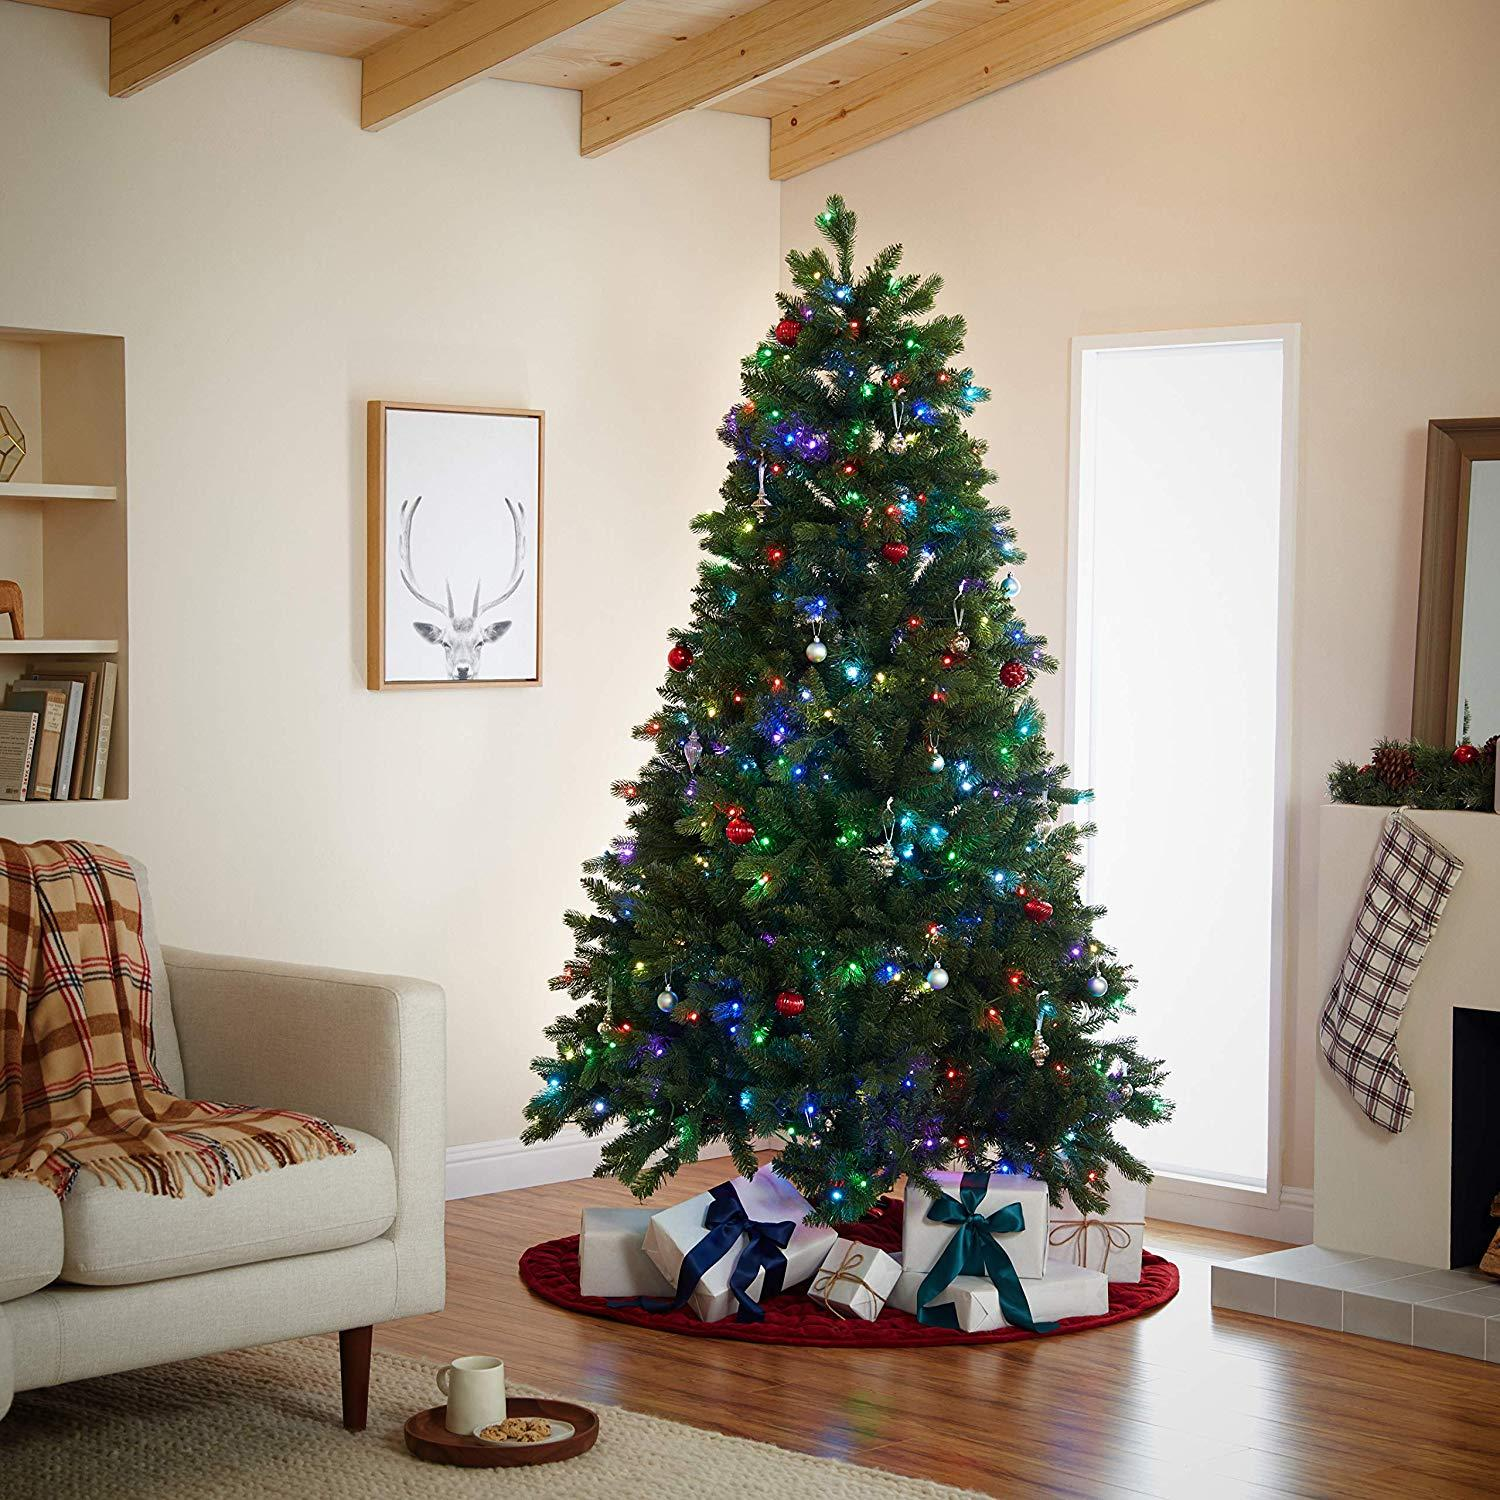 No more untangling wires! This smart Christmas tree works with Alexa for voice-activated holiday cheer